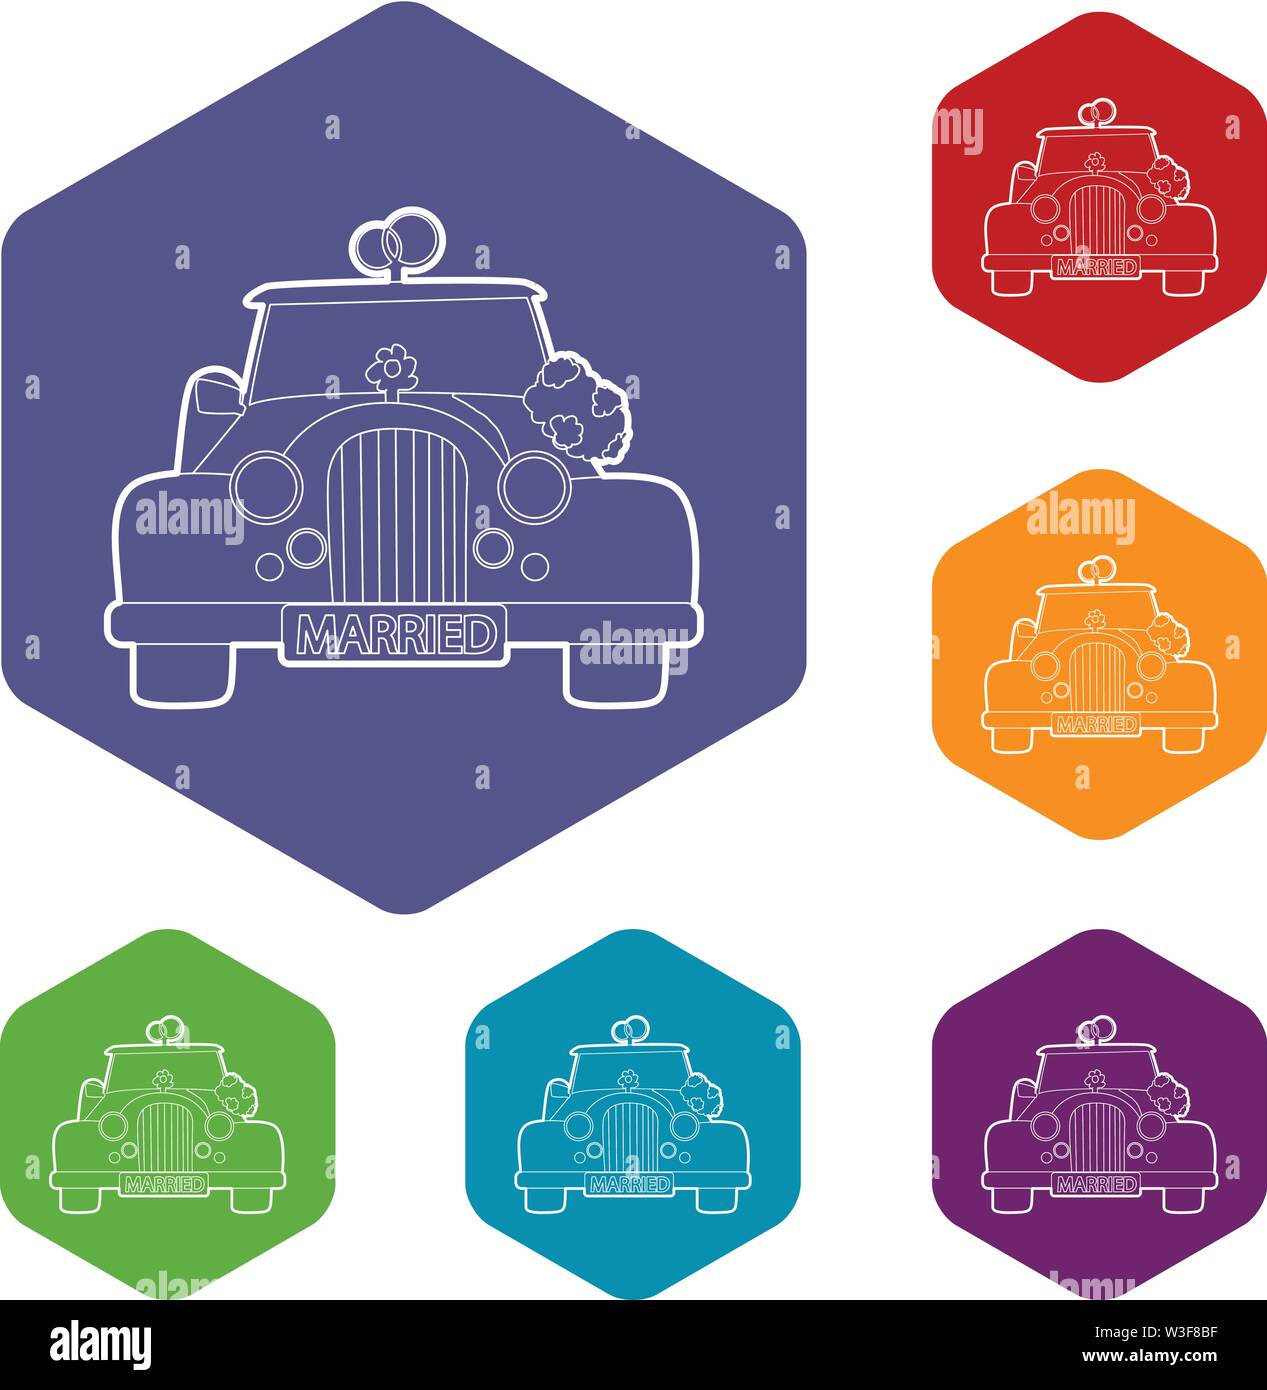 Wedding car icons vector hexahedron - Stock Image